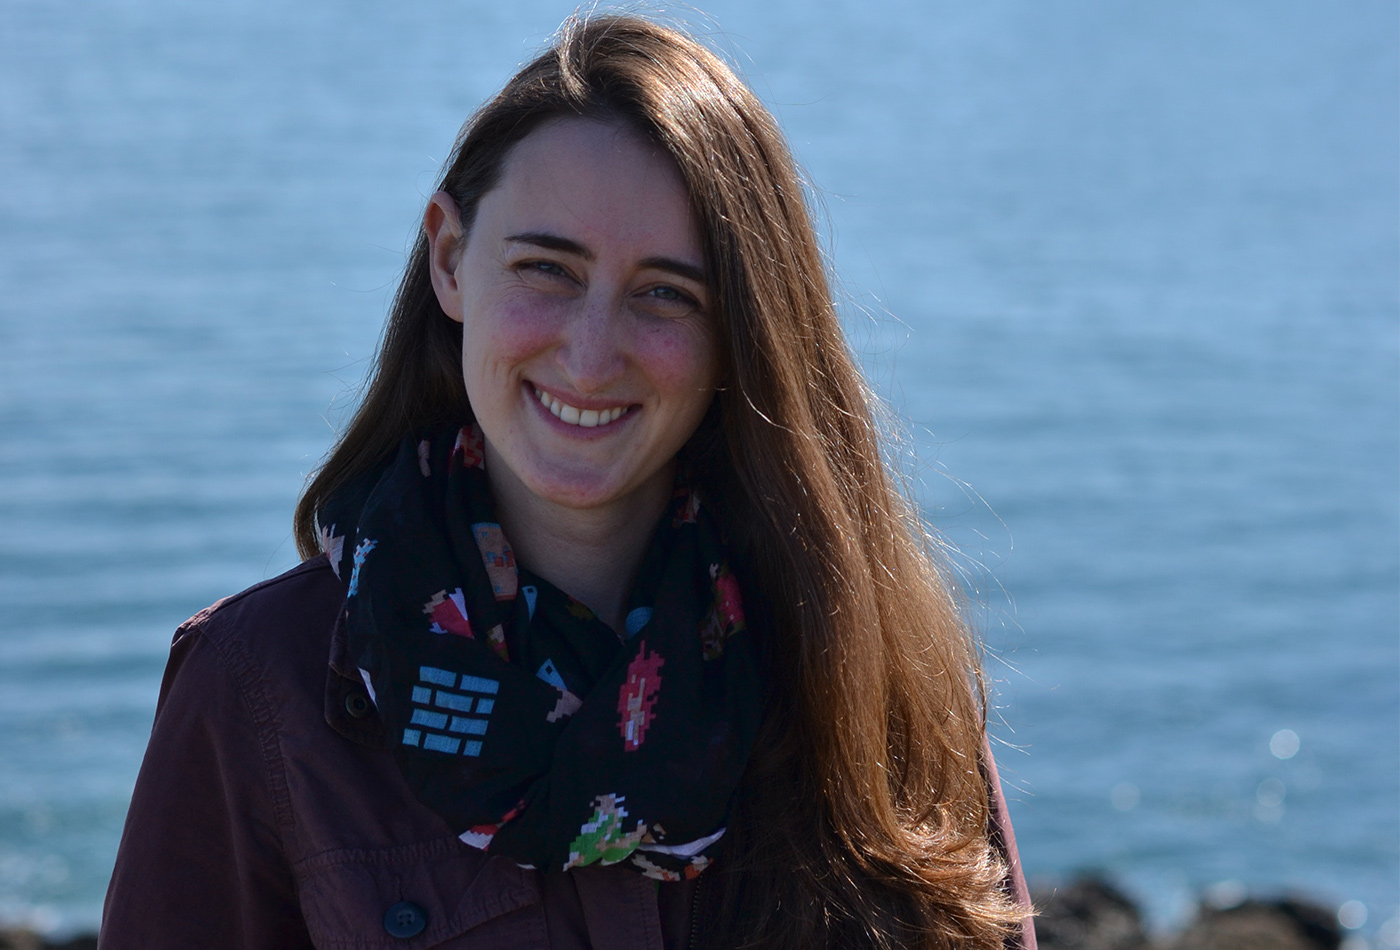 A female graduate student smiles before a body of water on a sunny day.